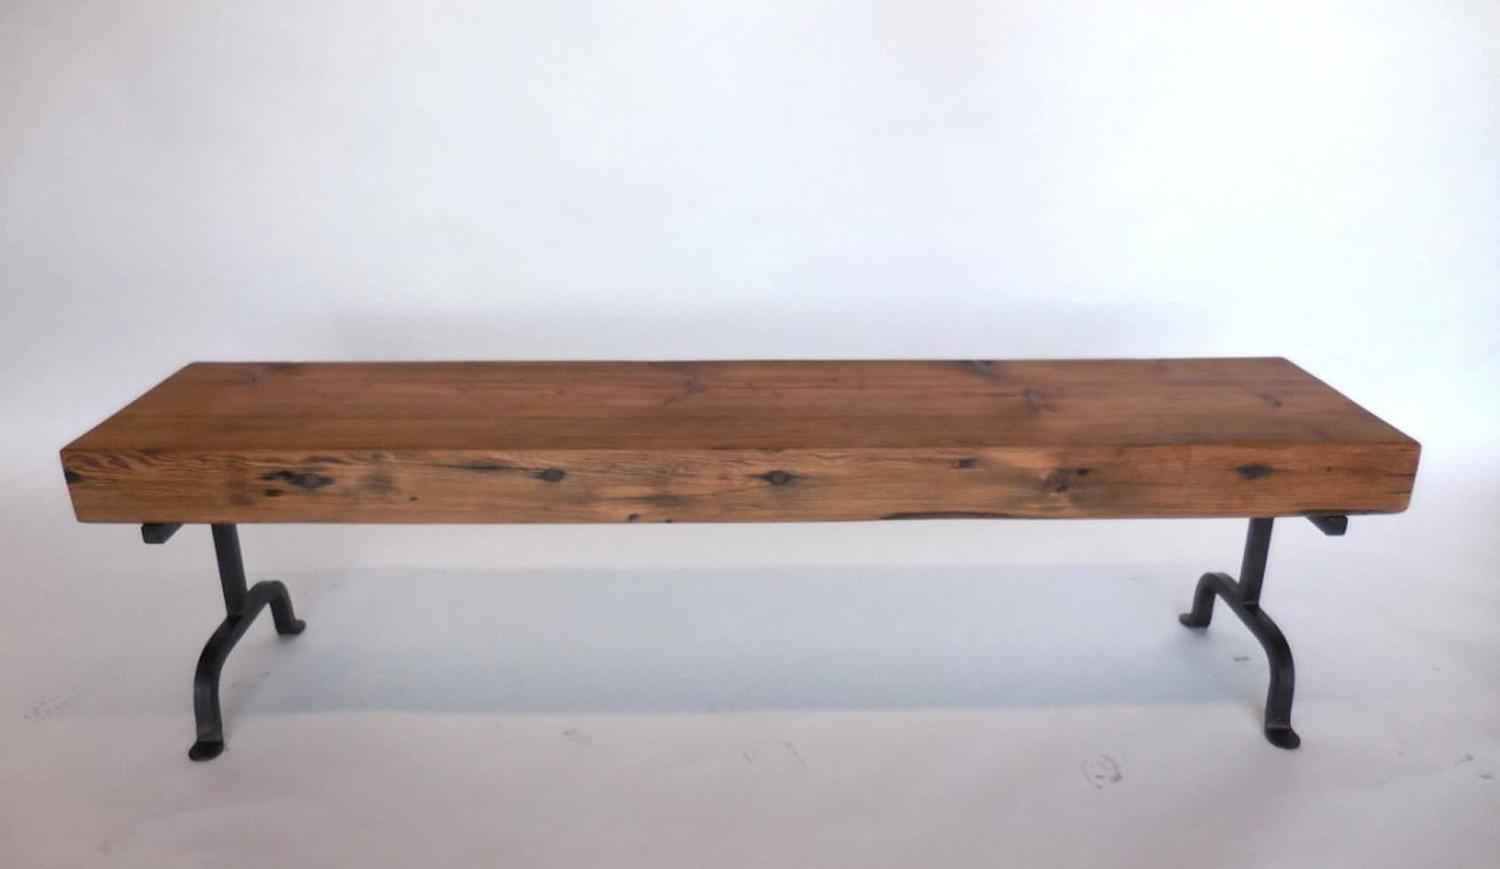 Rustic Wooden Benches For Sale 28 Images